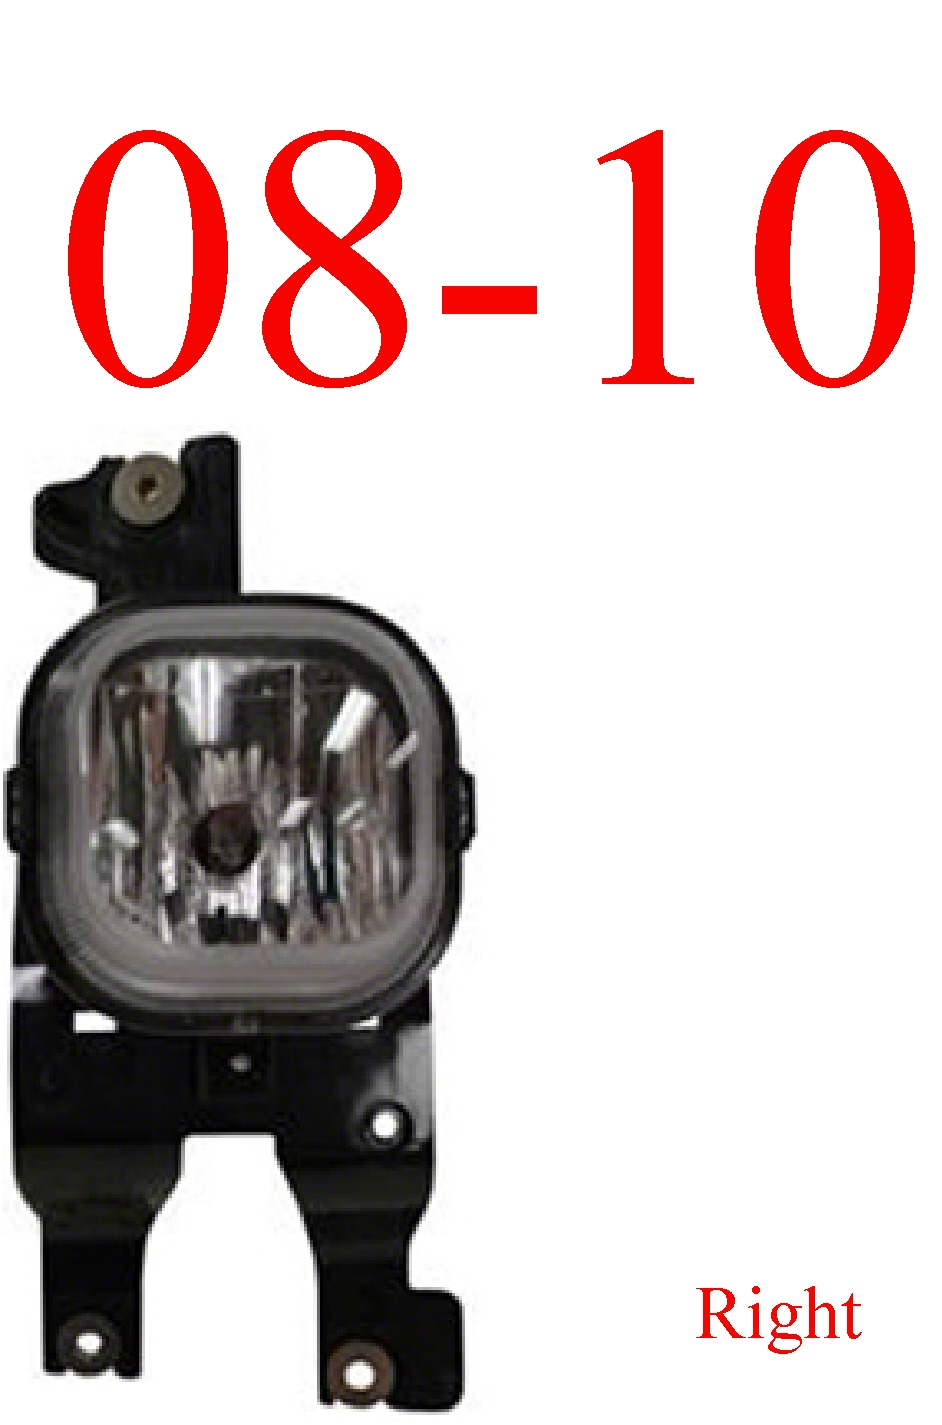 08-10 Ford Super Duty Right Fog Light Assembly